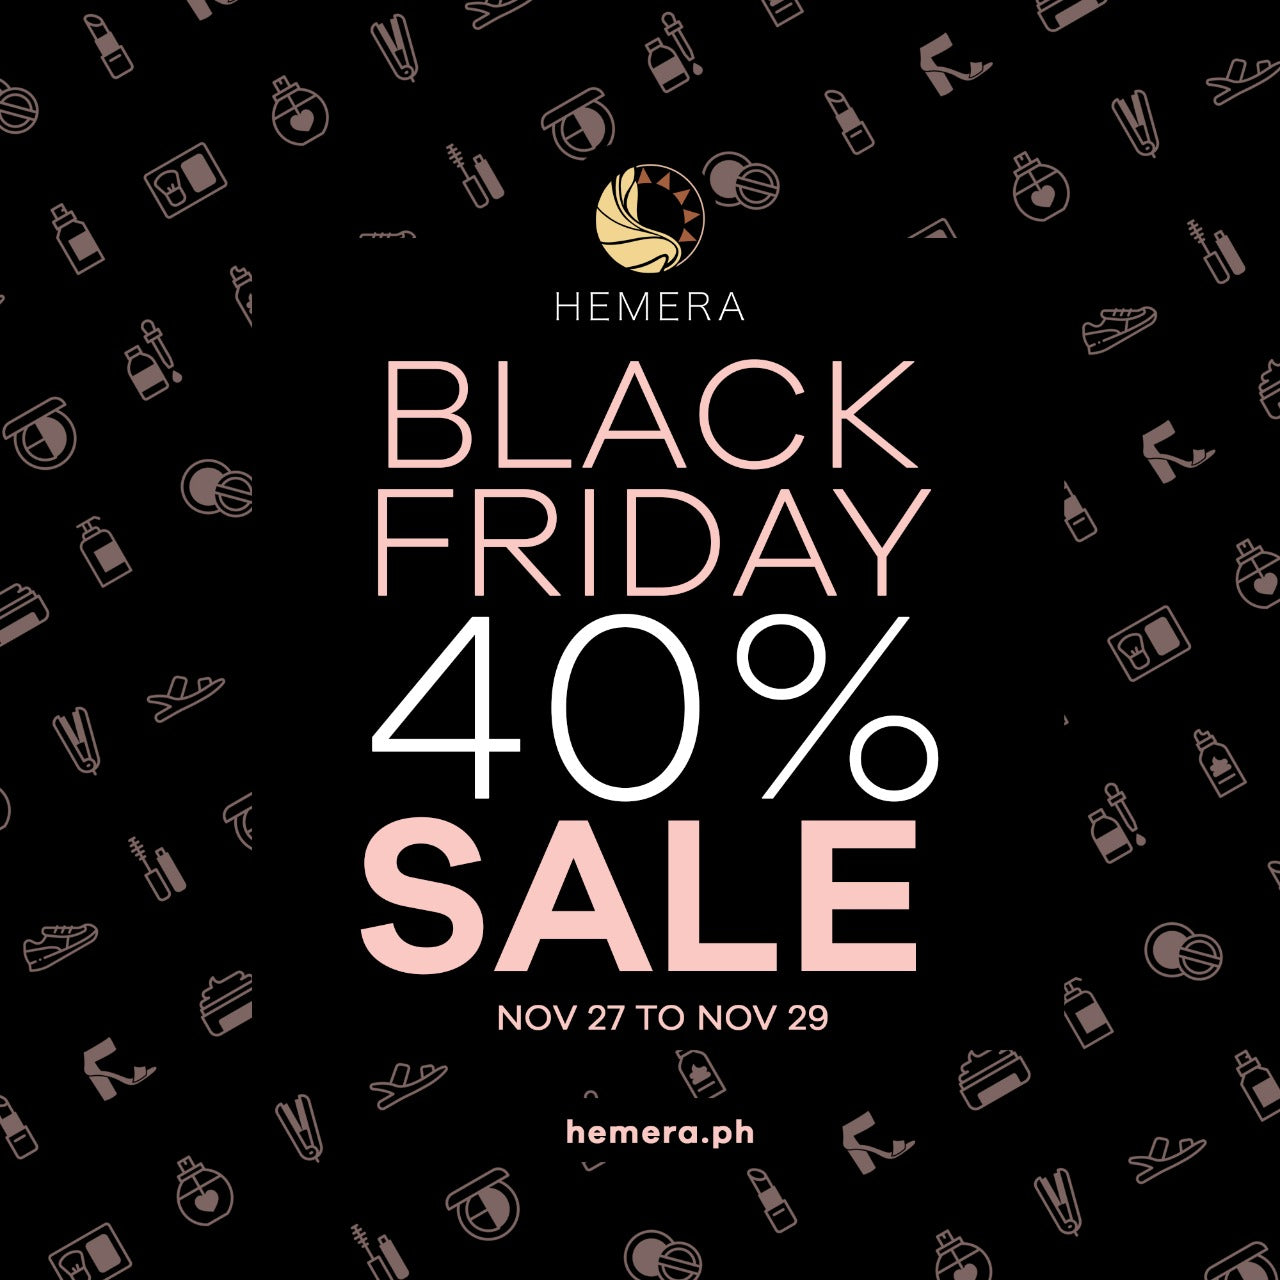 Hemera's Black Friday Sale